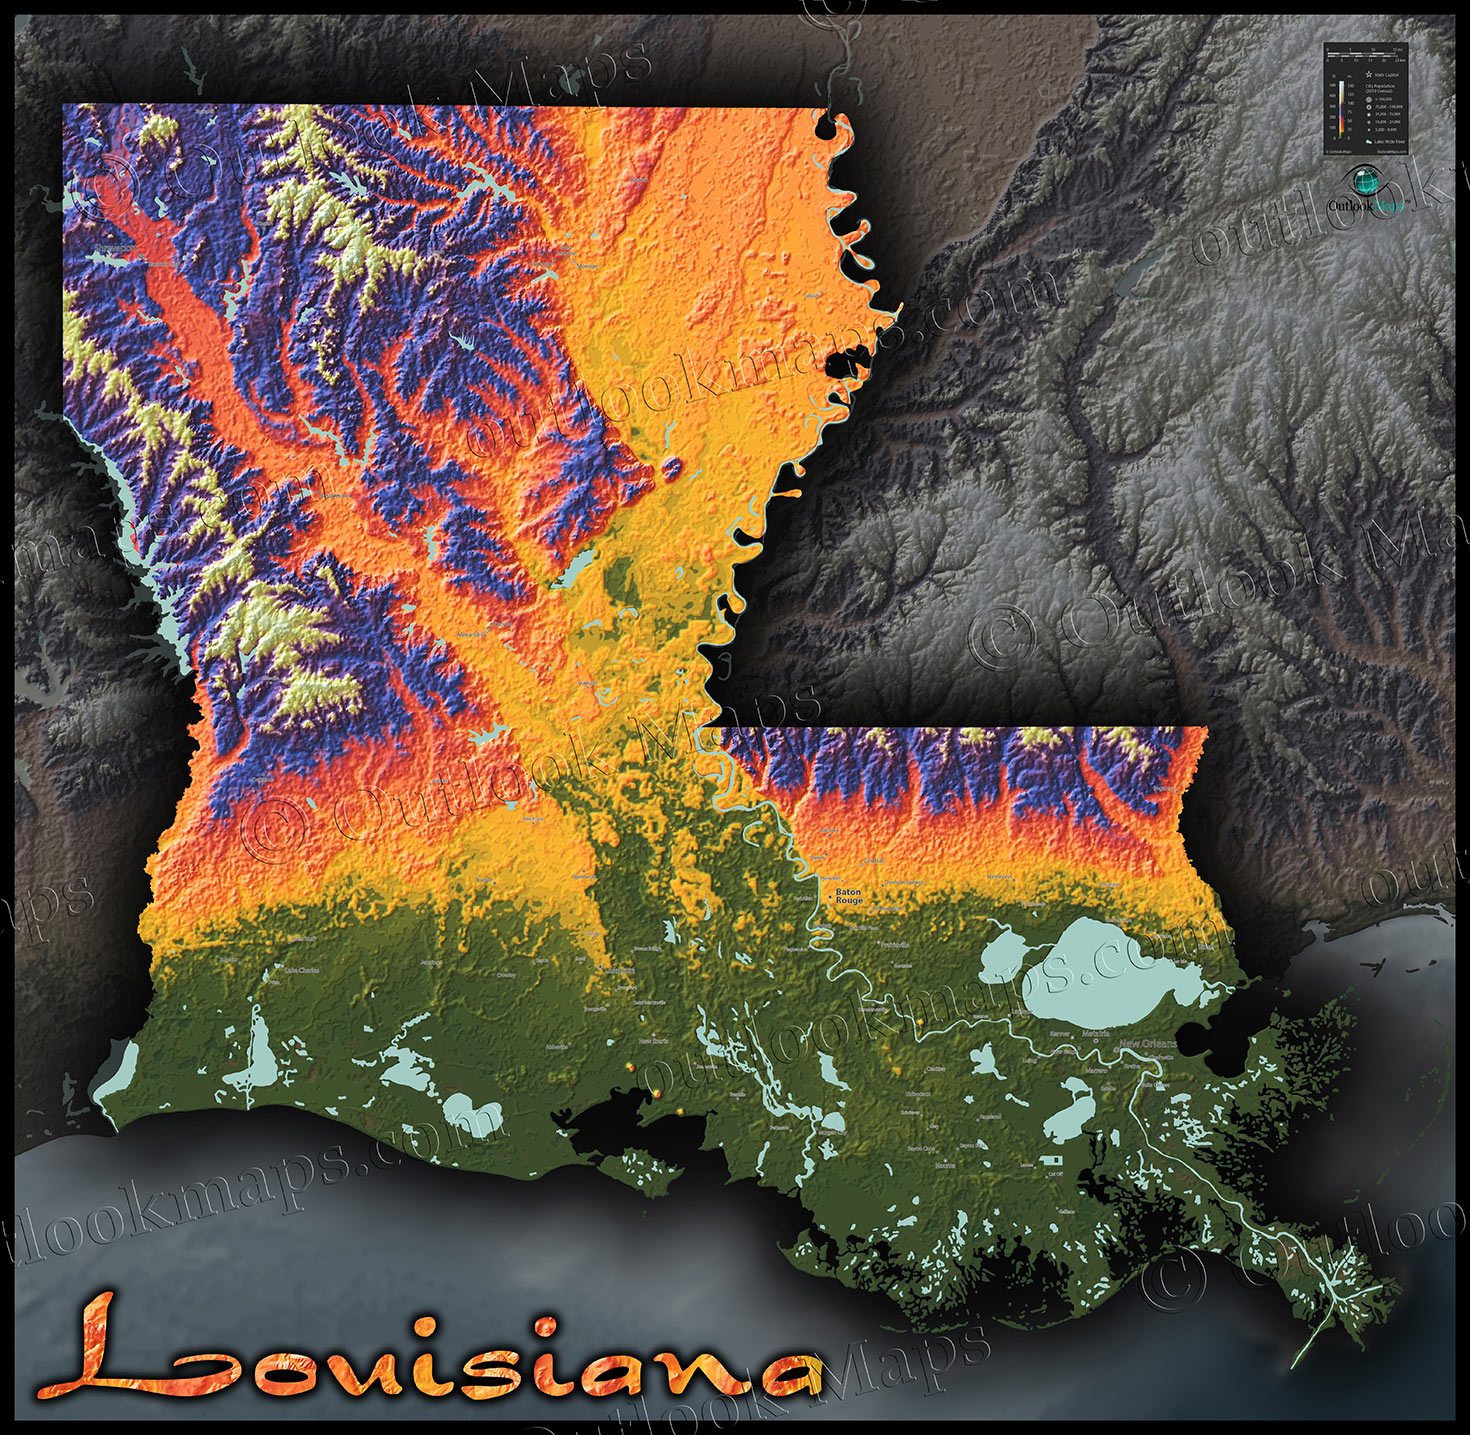 Louisiana Physical Map Colorful D Terrain Topography - Lousiana map